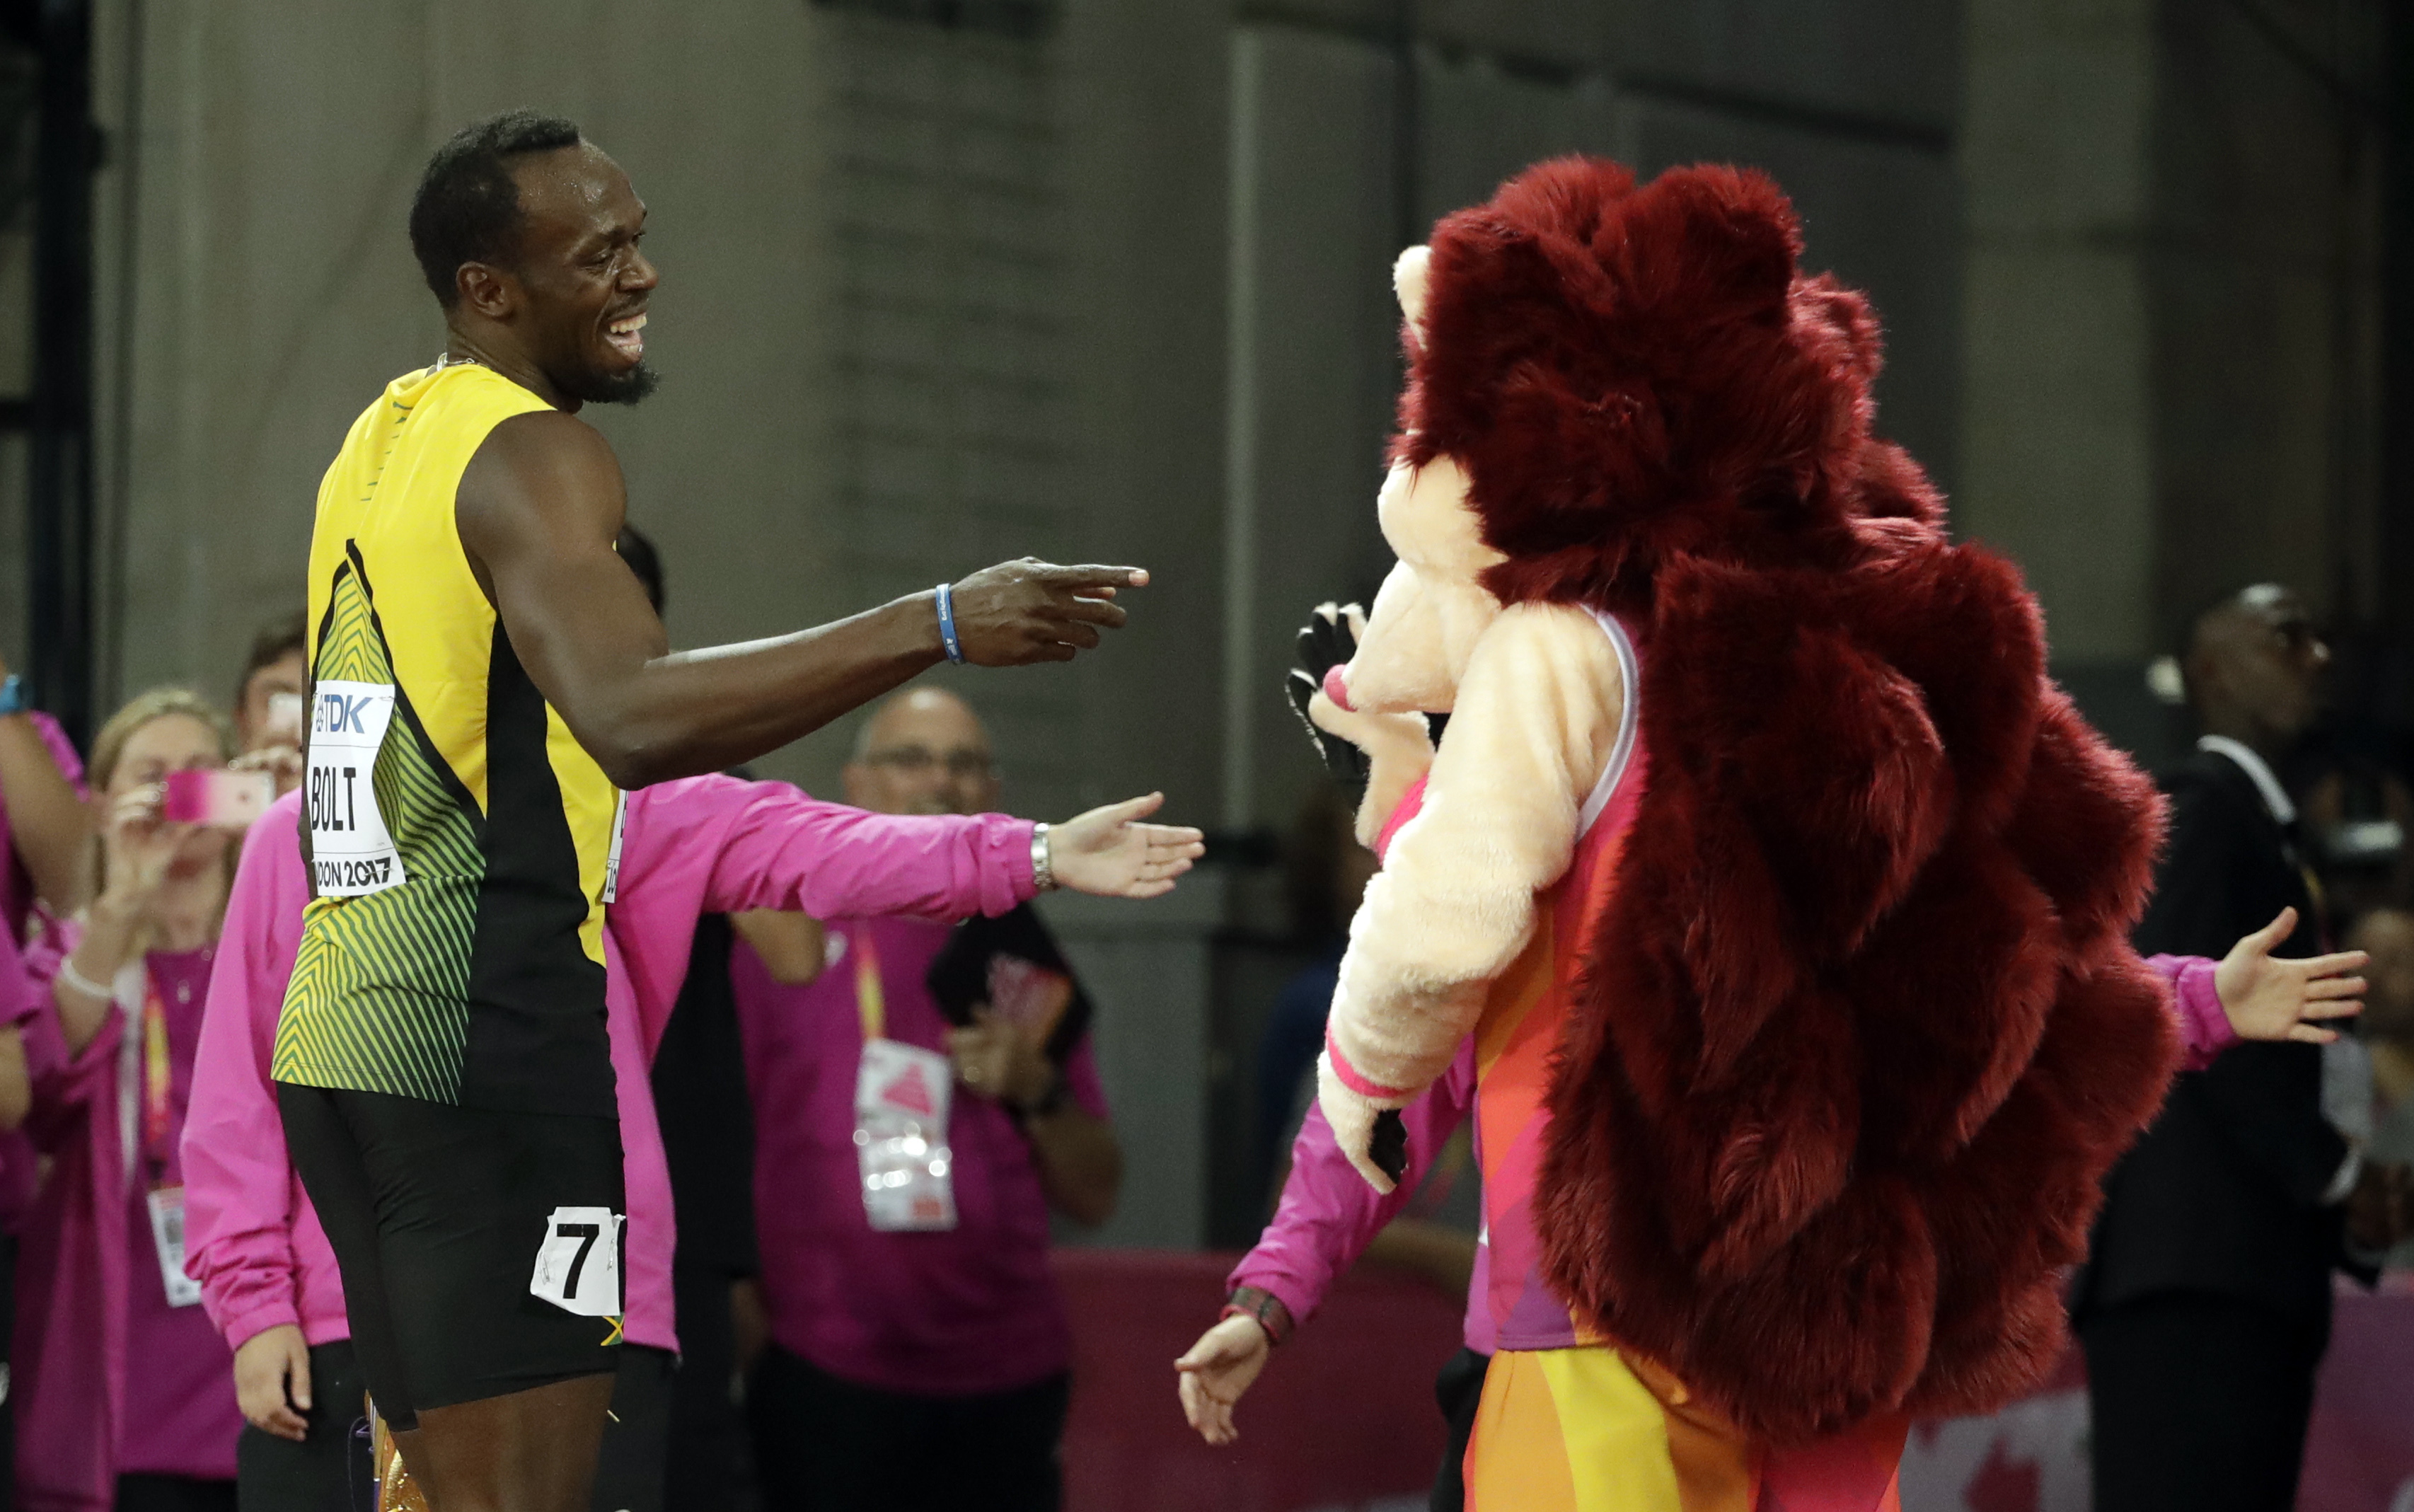 Jamaica's Usain Bolt jokes with mascot Hero the Hedgehog after his men's 100m heat during the World Athletics Championships in London Friday, Aug. 4, 2017. (AP Photo/Matthias Schrader)